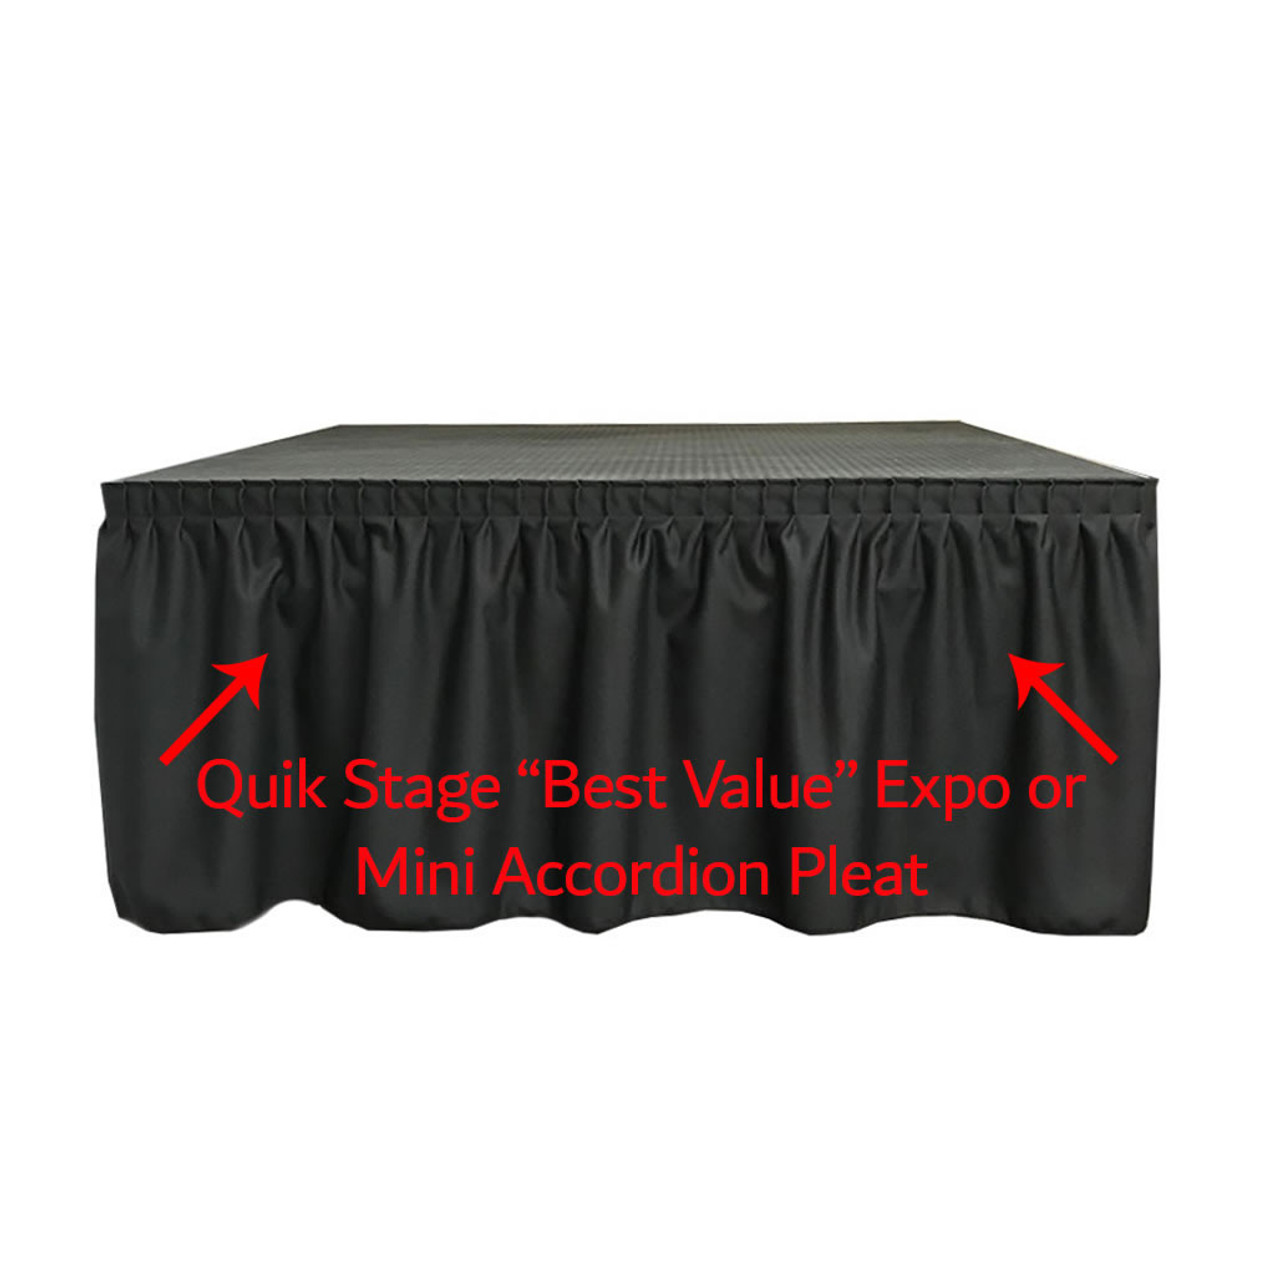 High Quality Quik Stage 8' x 16' High Portable Stage Package with Black Polyvinyl Non-Skid Surface. Additional Heights and Surfaces Available - Best Value Expo Pleat Stage Skirting